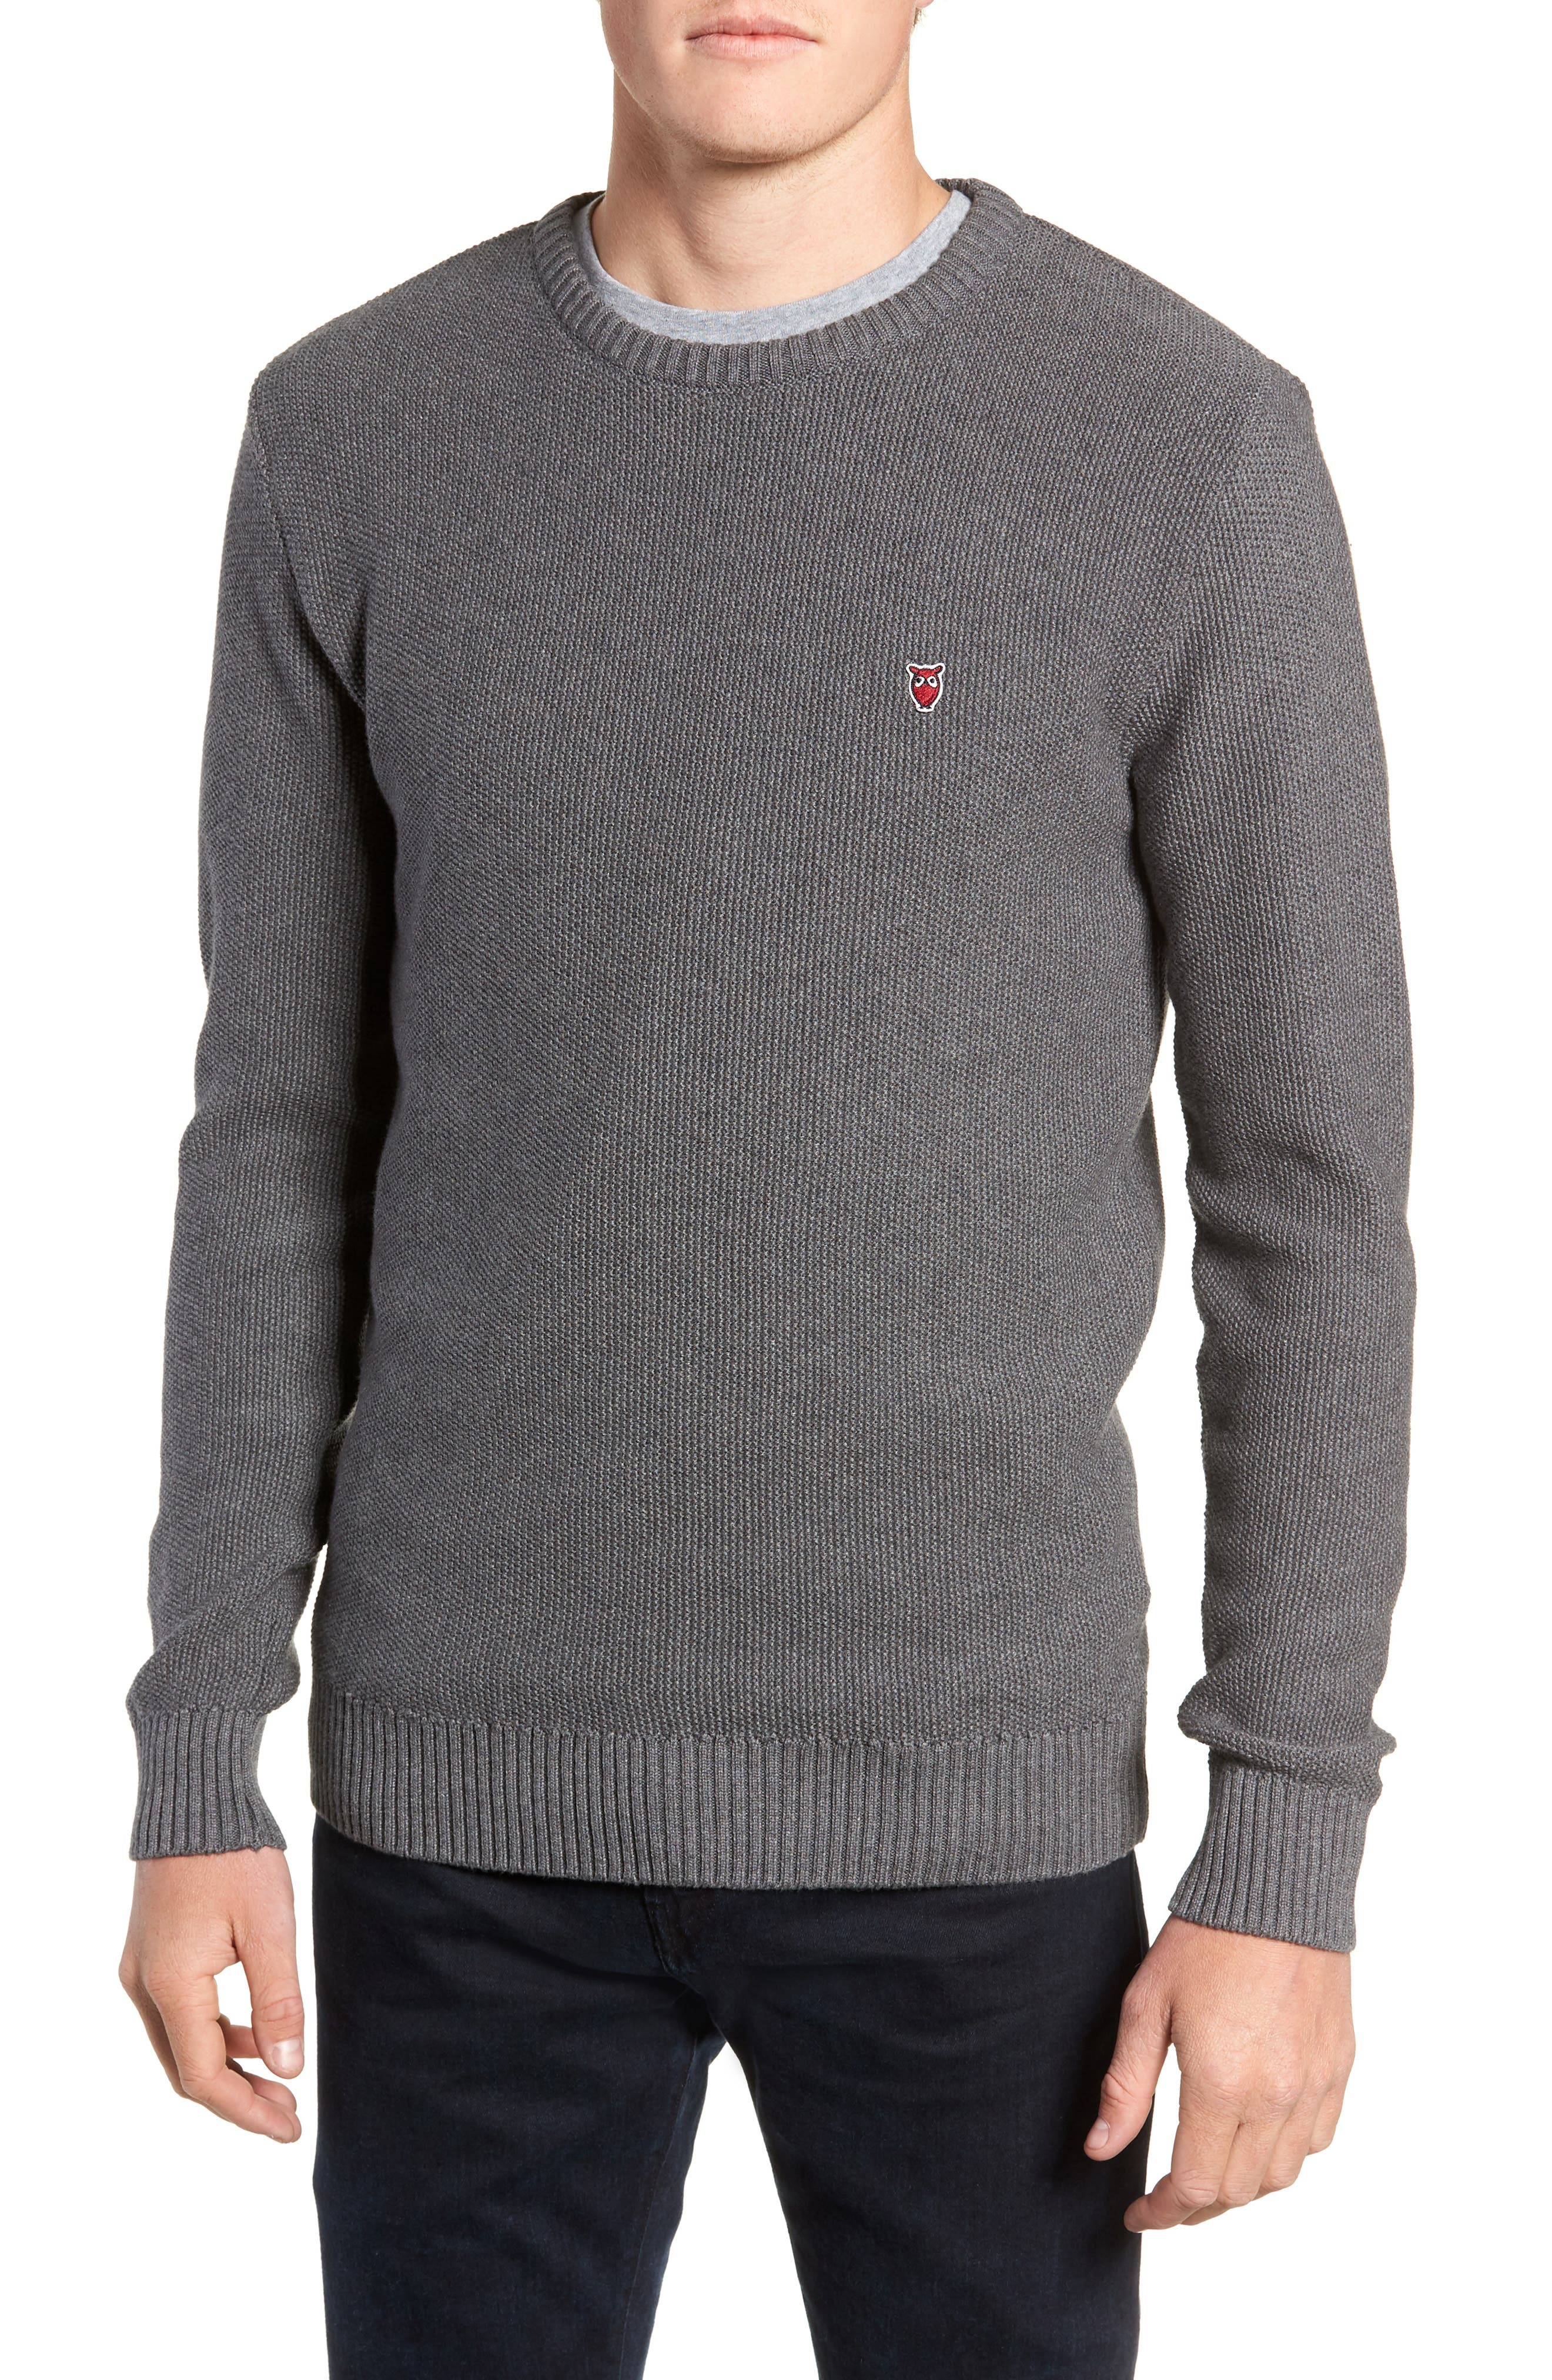 Knowledgecotton Apparel Owl Textured Sweater, Grey